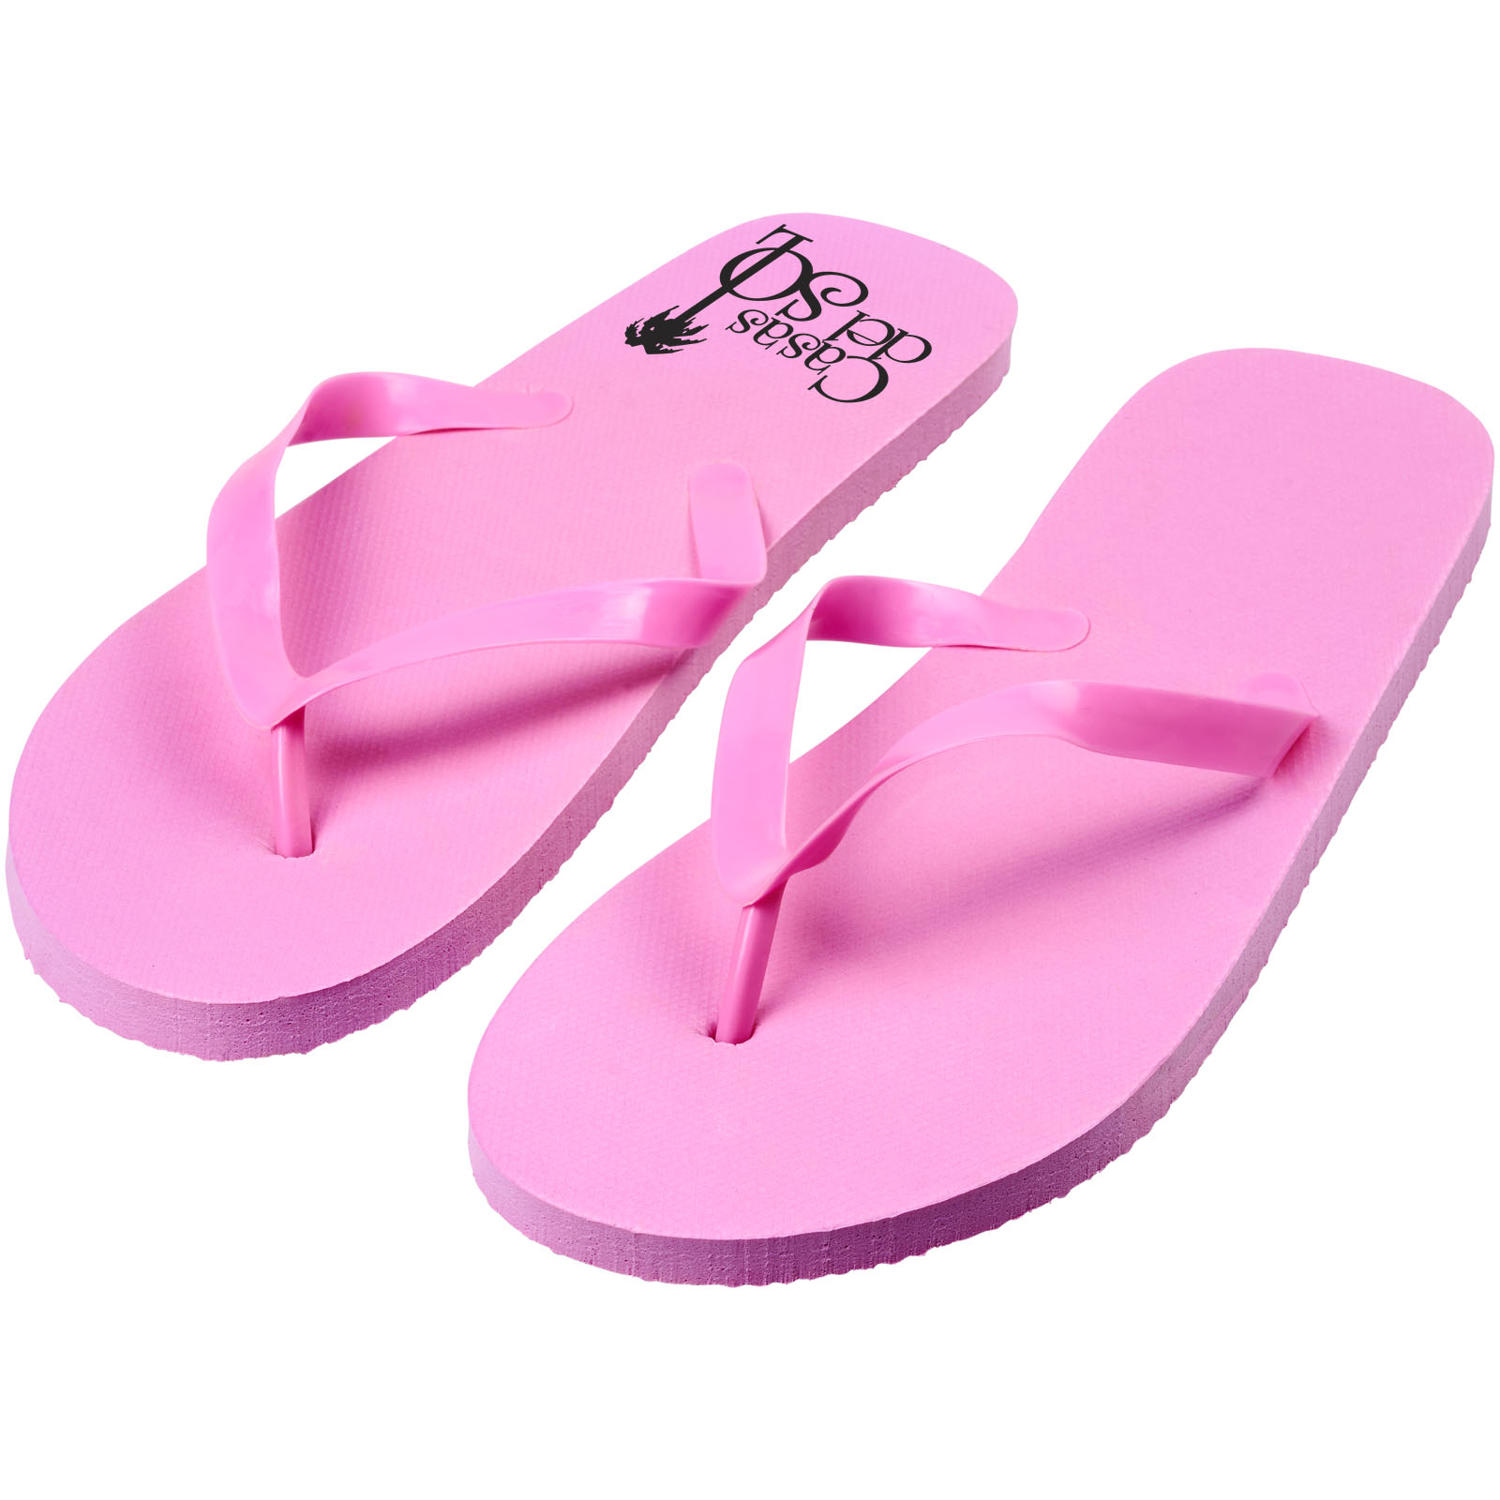 Railay Beach Slippers (L)